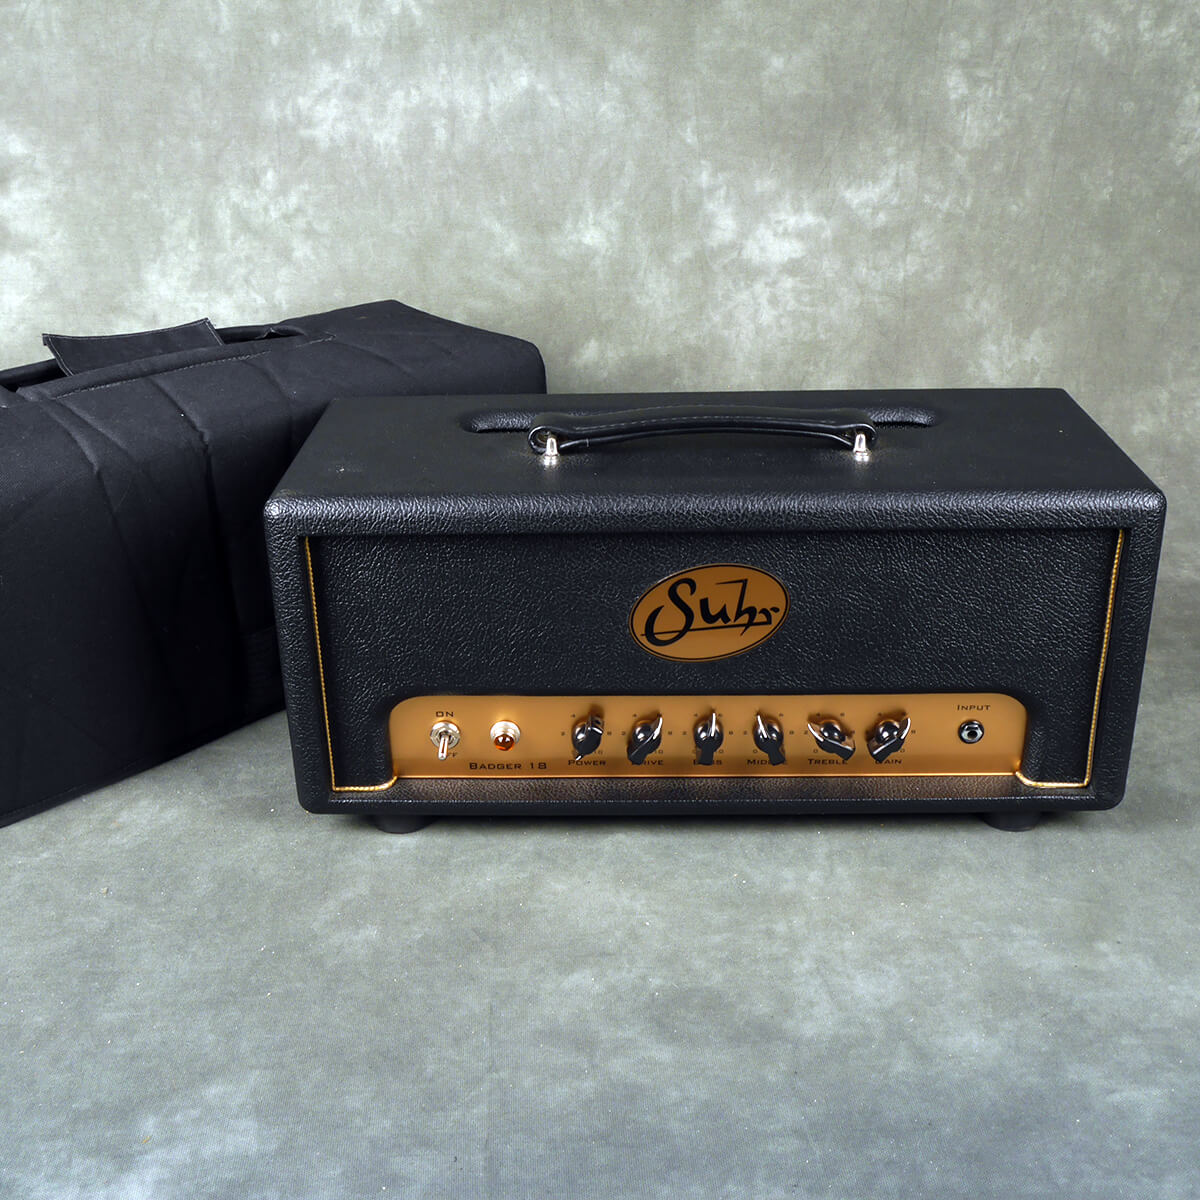 Suhr Badger 18w Amp Head **UK SHIP ONLY** w/Cover - 2nd Hand